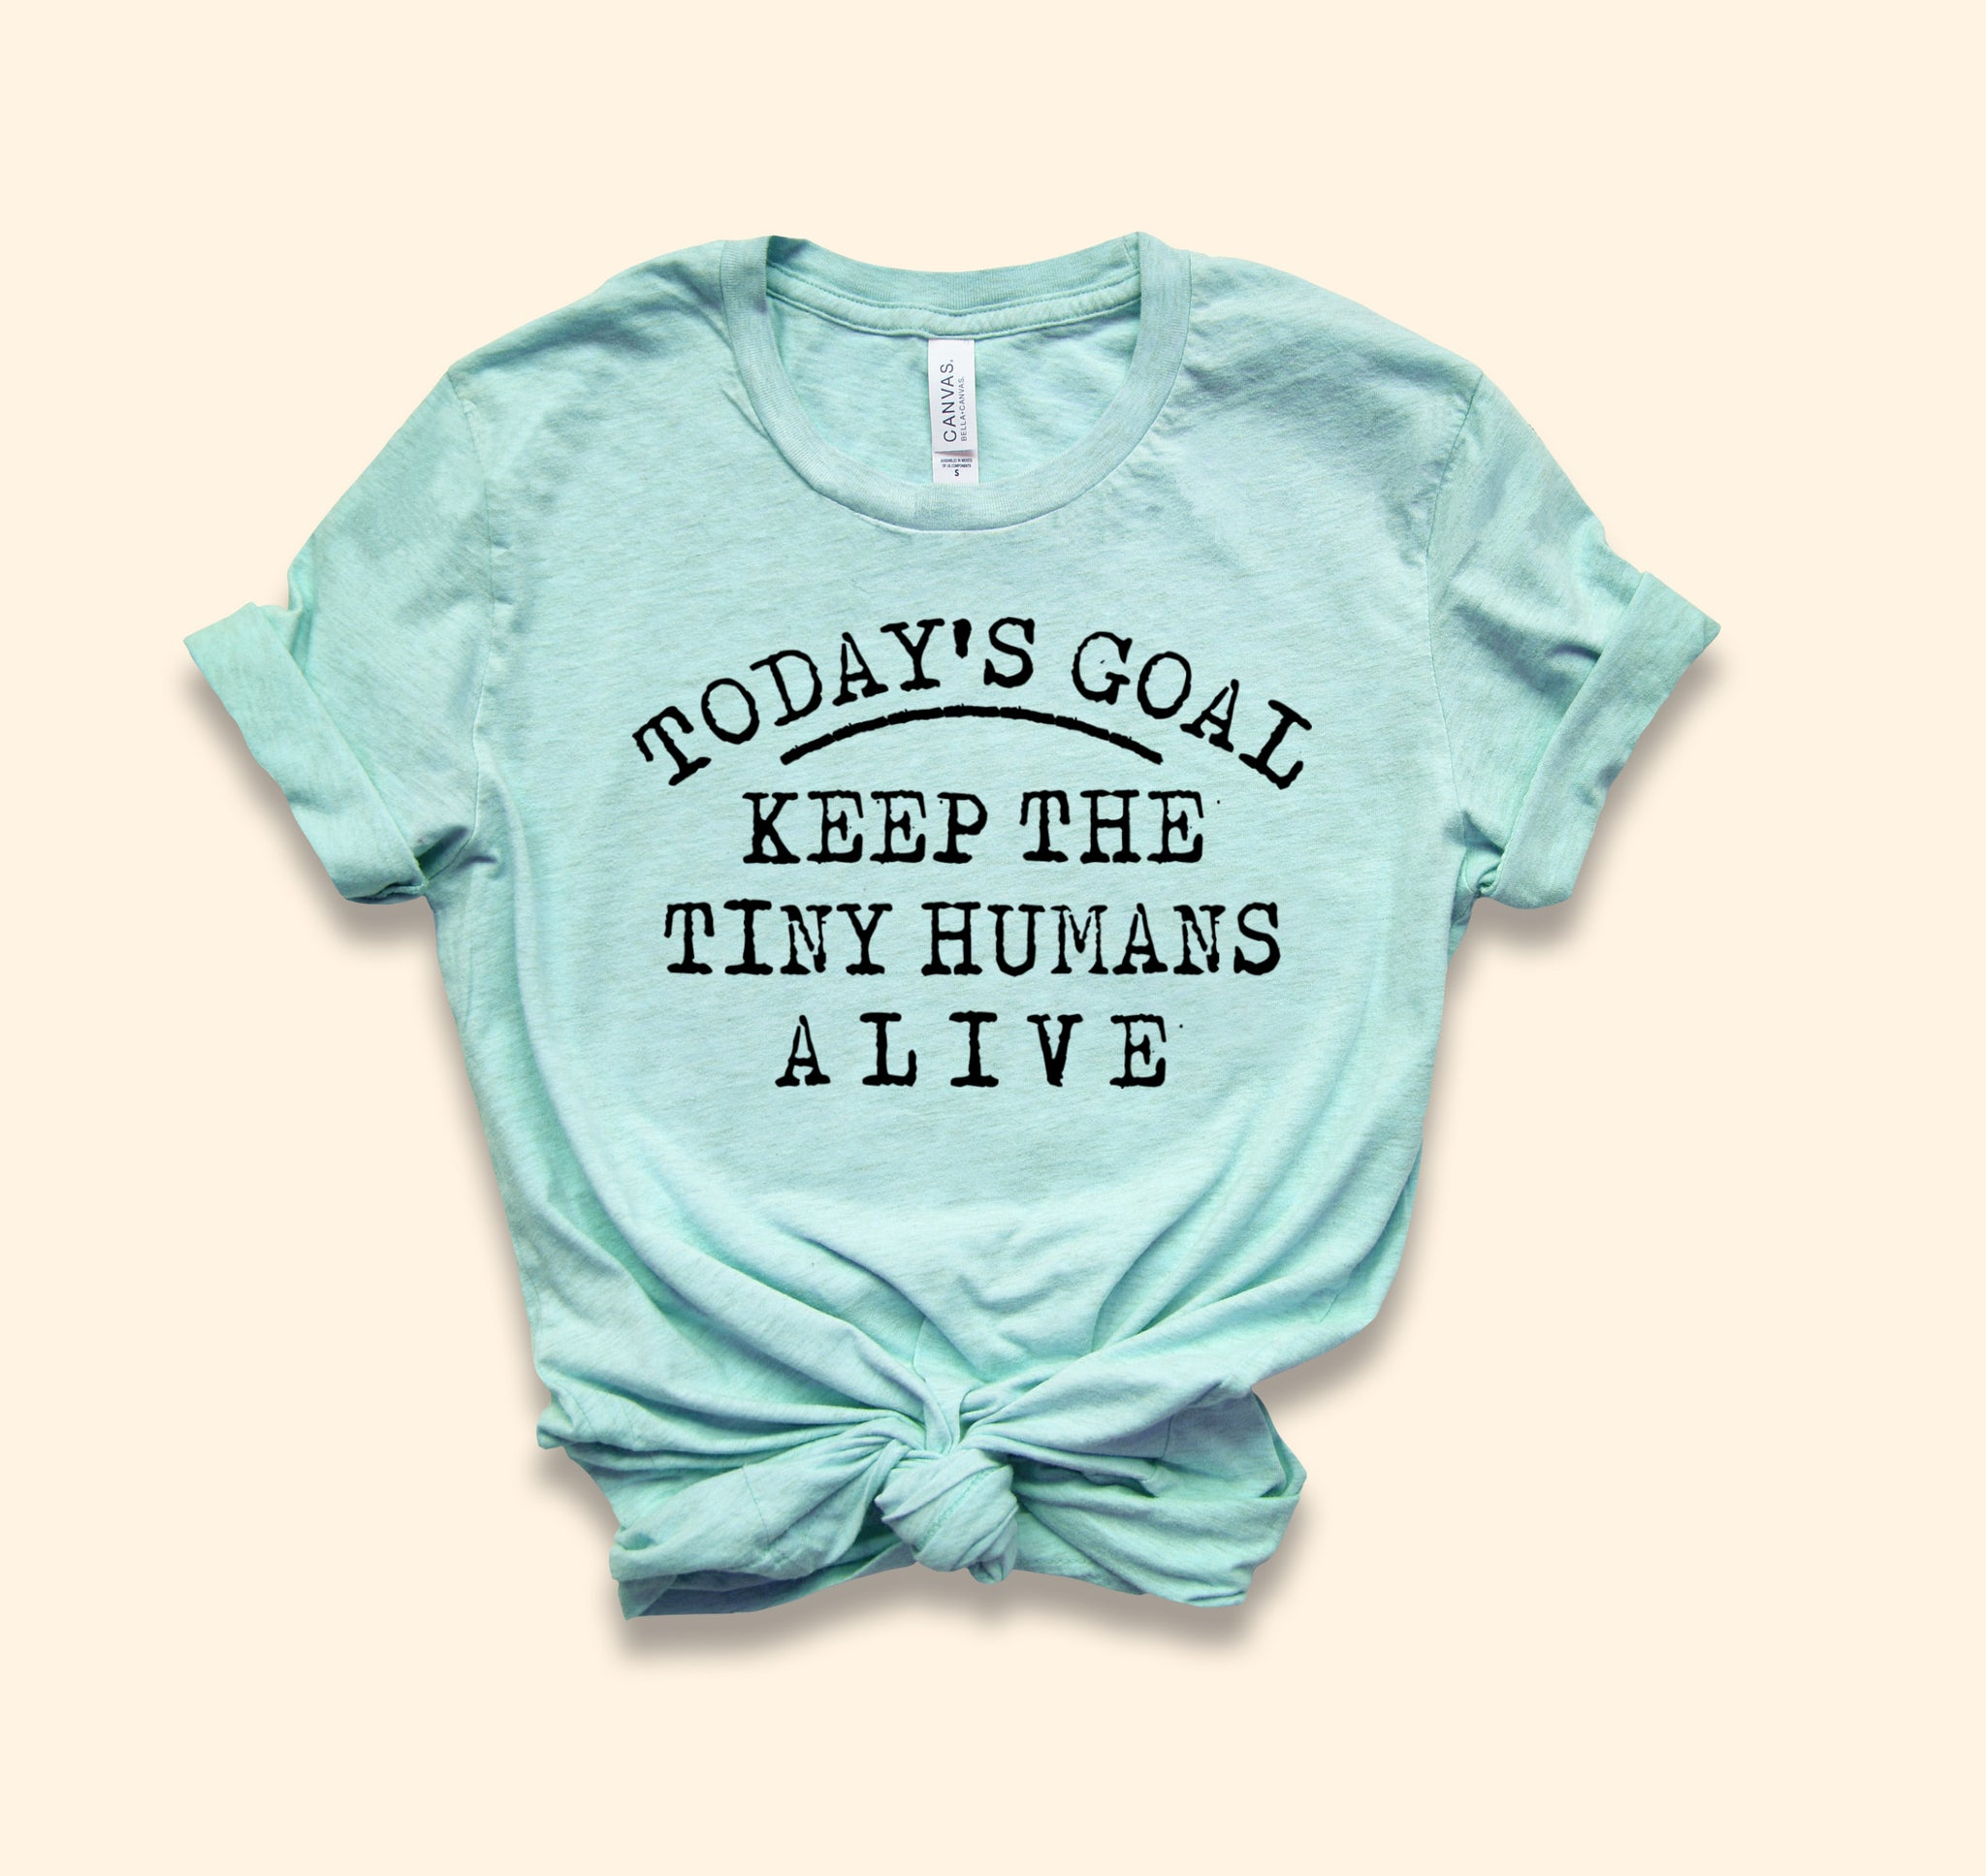 Today's Goal Keep The Tiny Humans Alive Shirt